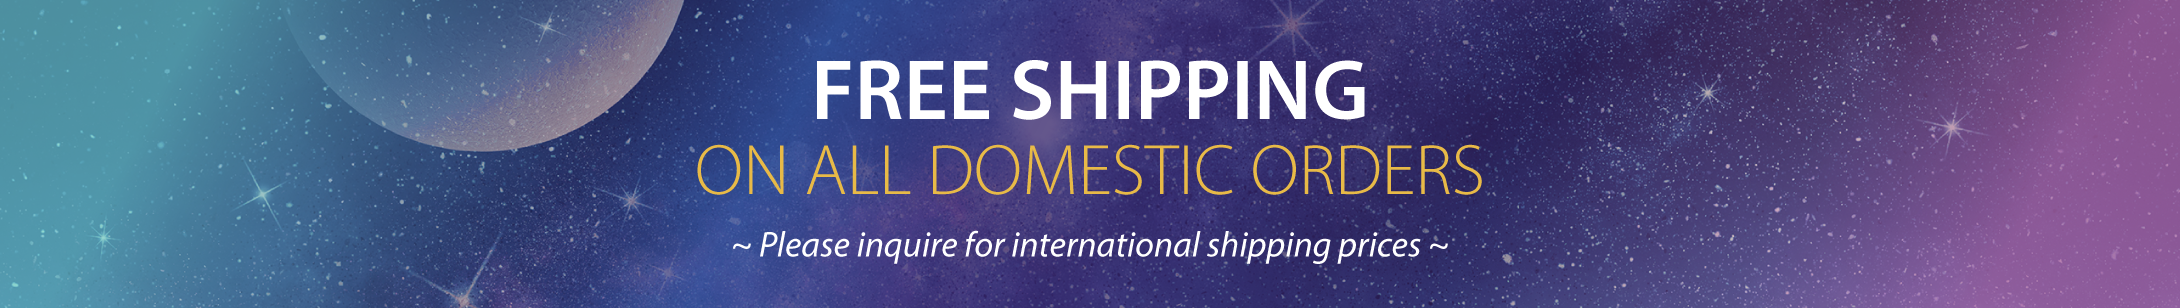 Free shipping on all domestic orders - please inquire for international shipping prices